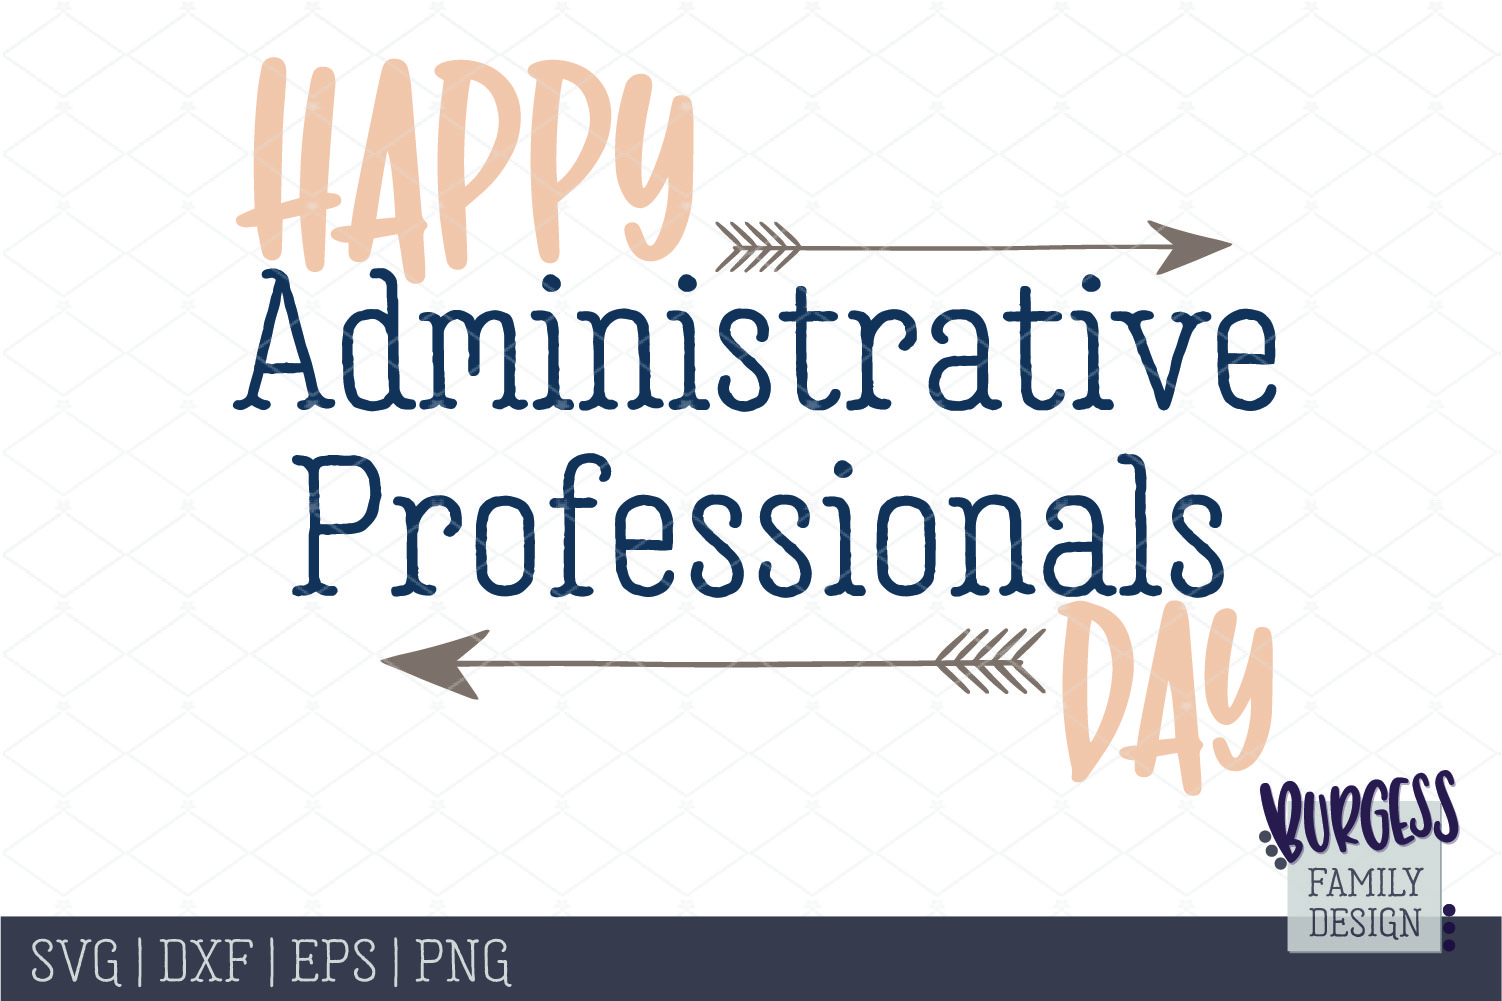 Happy Administrative Professionals Day   SVG DXF EPS PNG example image 2